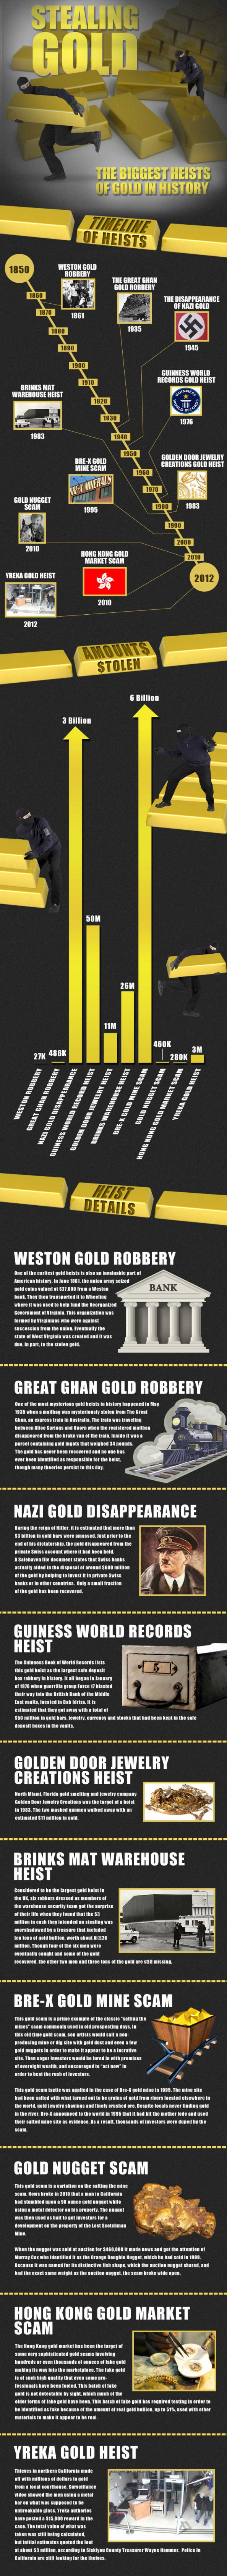 Stealing Gold Infographic